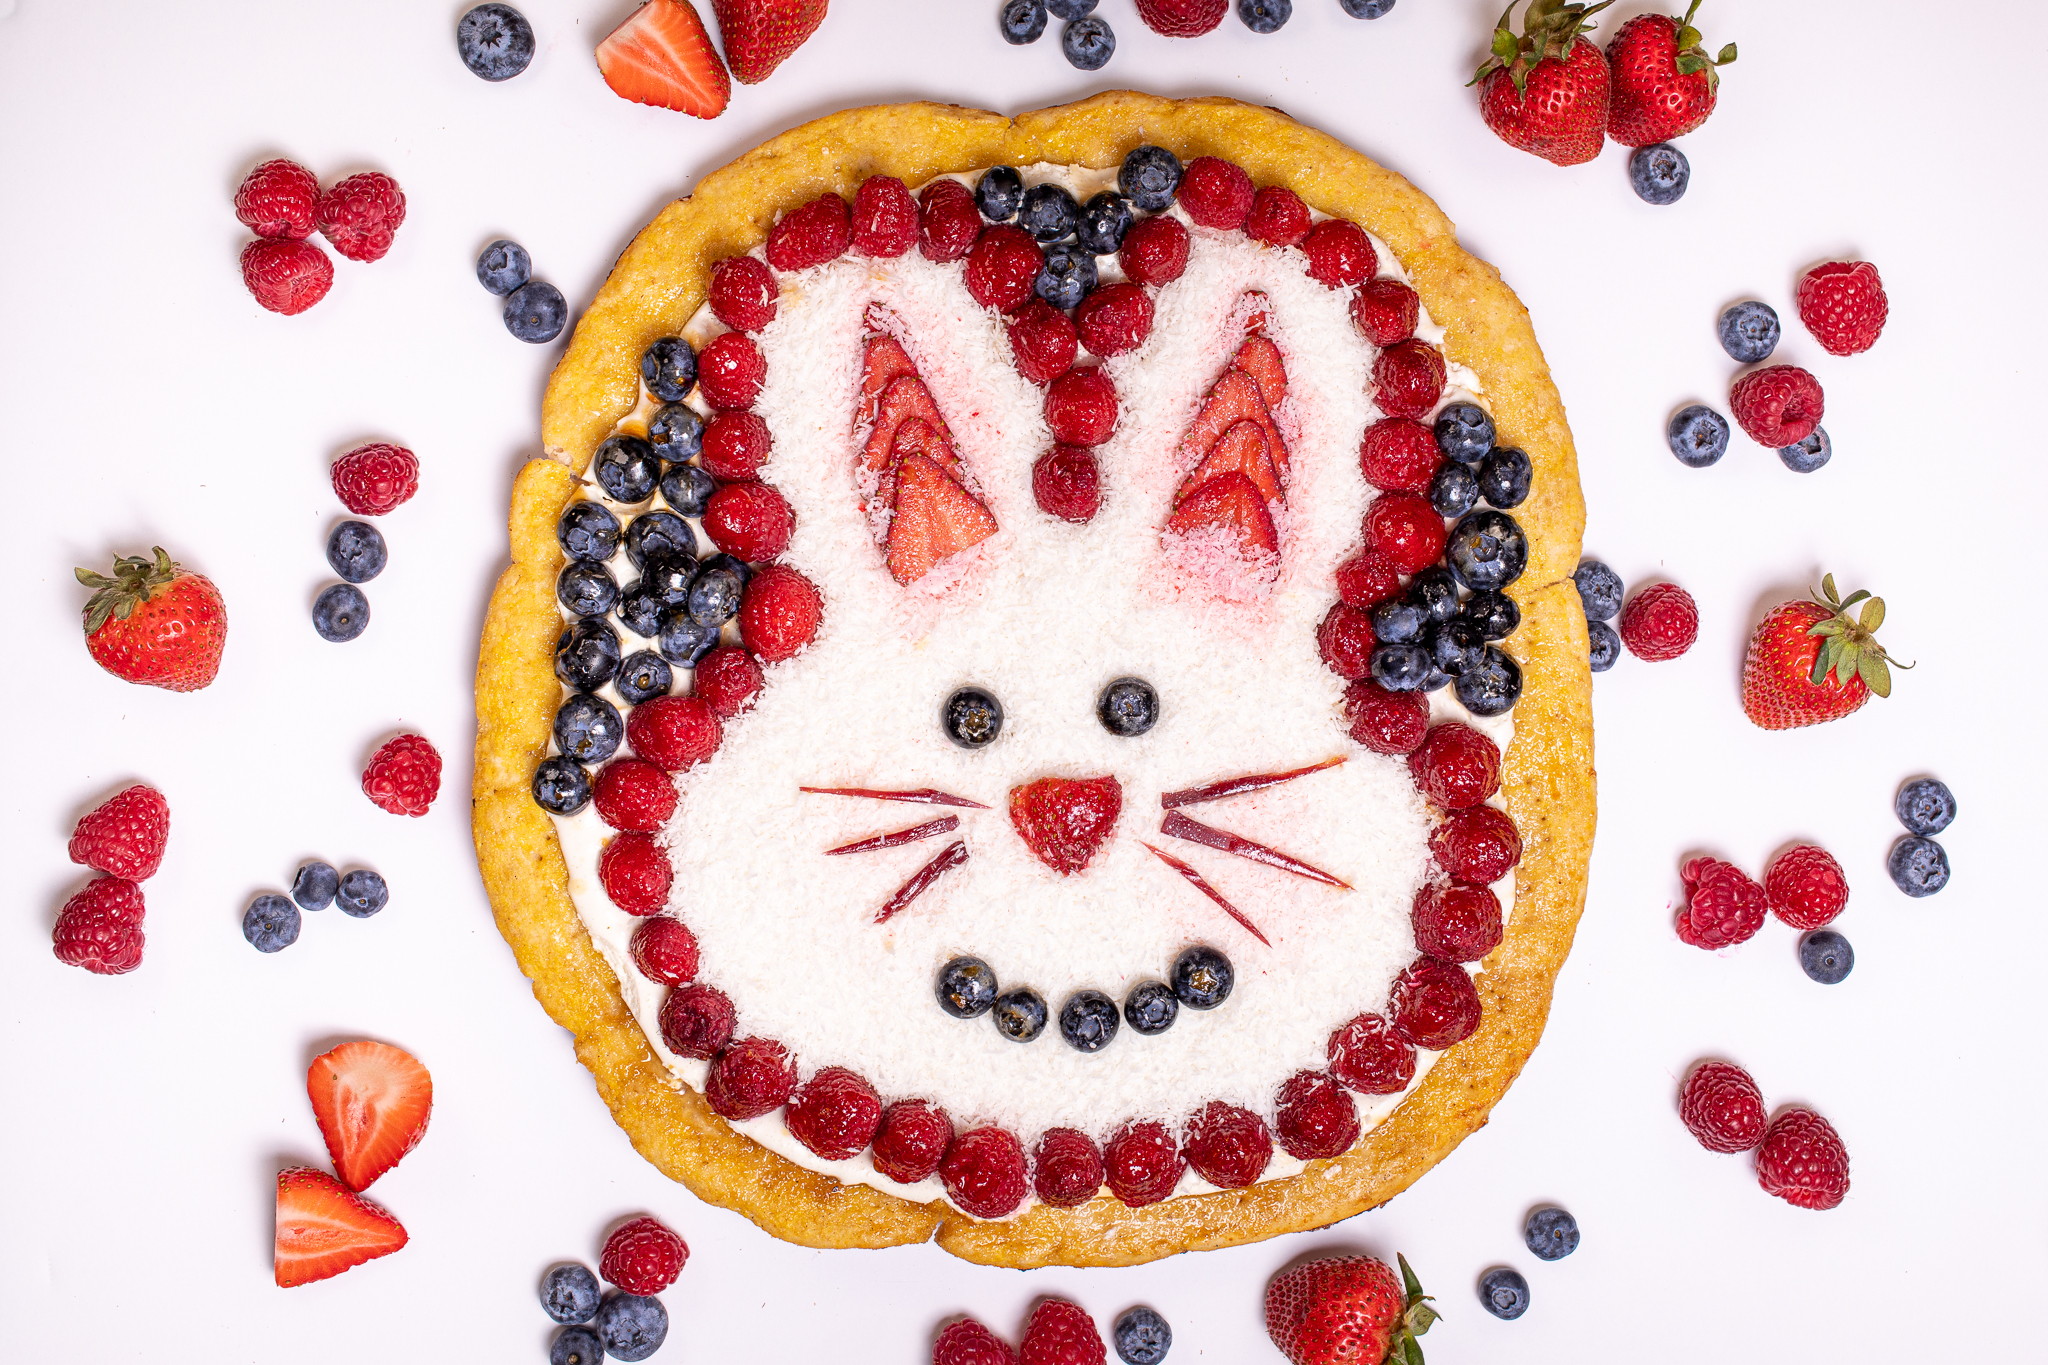 Photo of pizza decorated with fruit and an easter bunny design